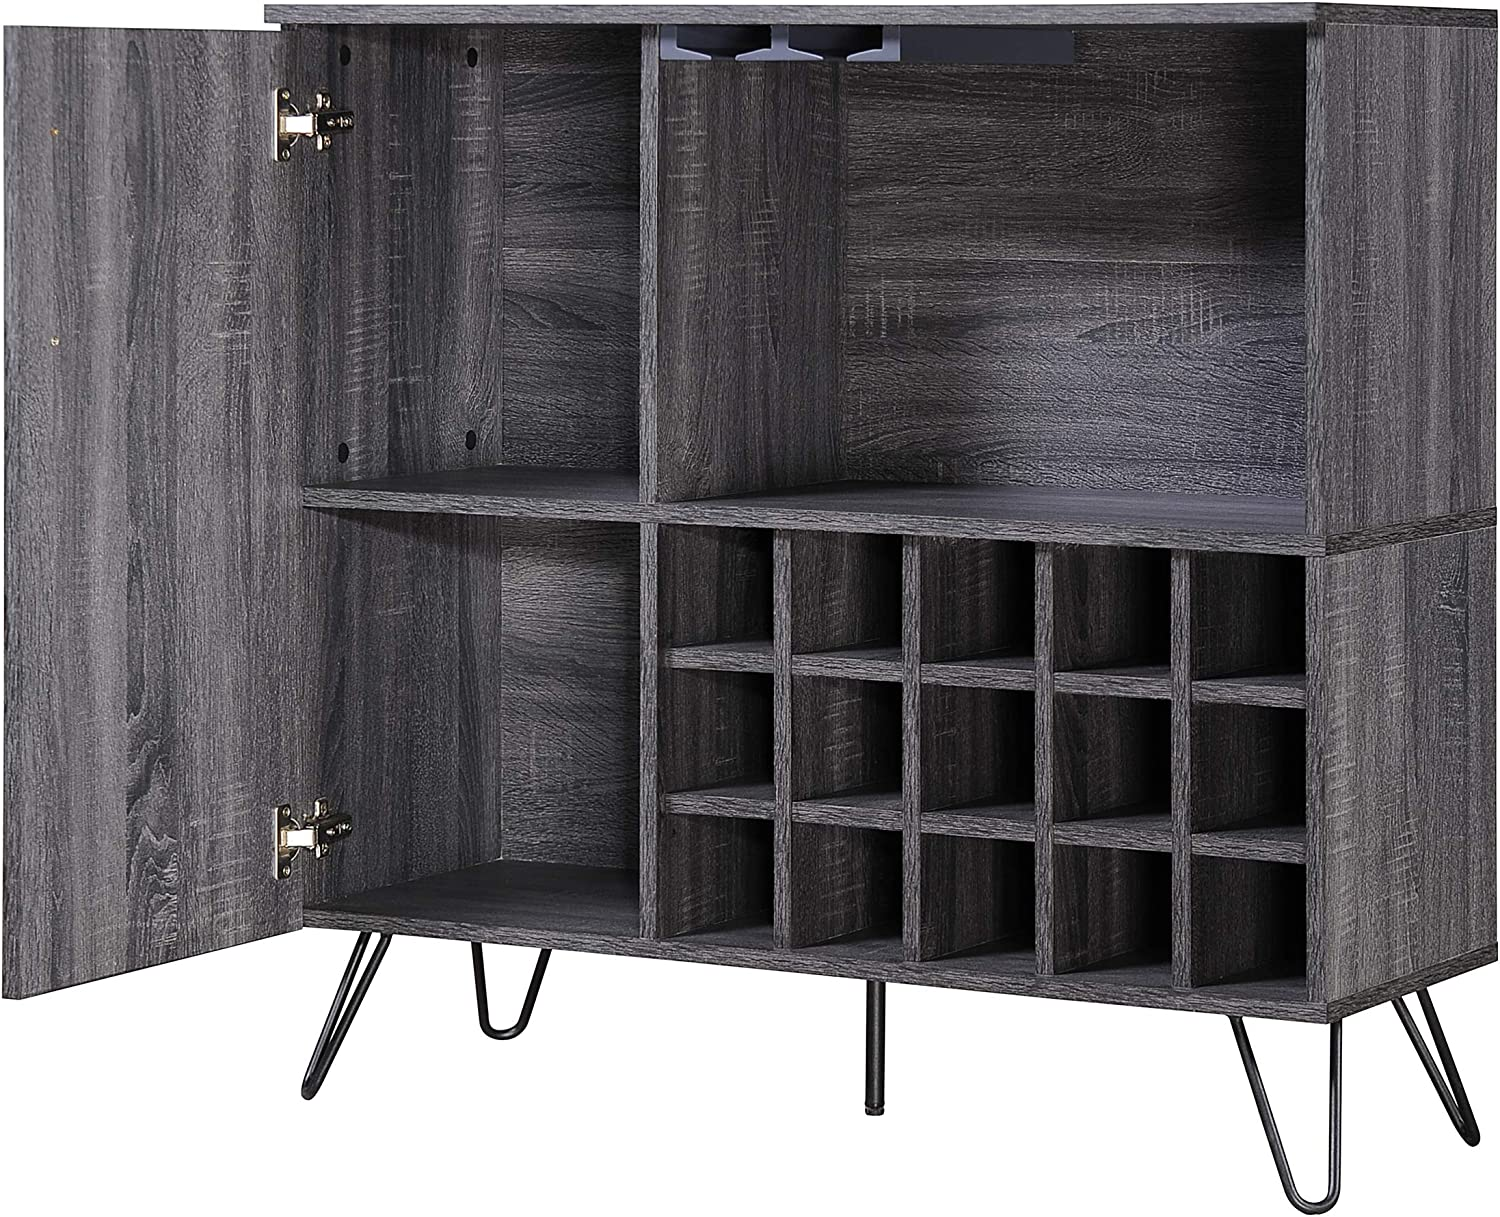 Christopher Knight Home Lochner Mid-Century Faux Wood Wine and Bar Cabinet, Black / Sonoma Grey Oak Finish